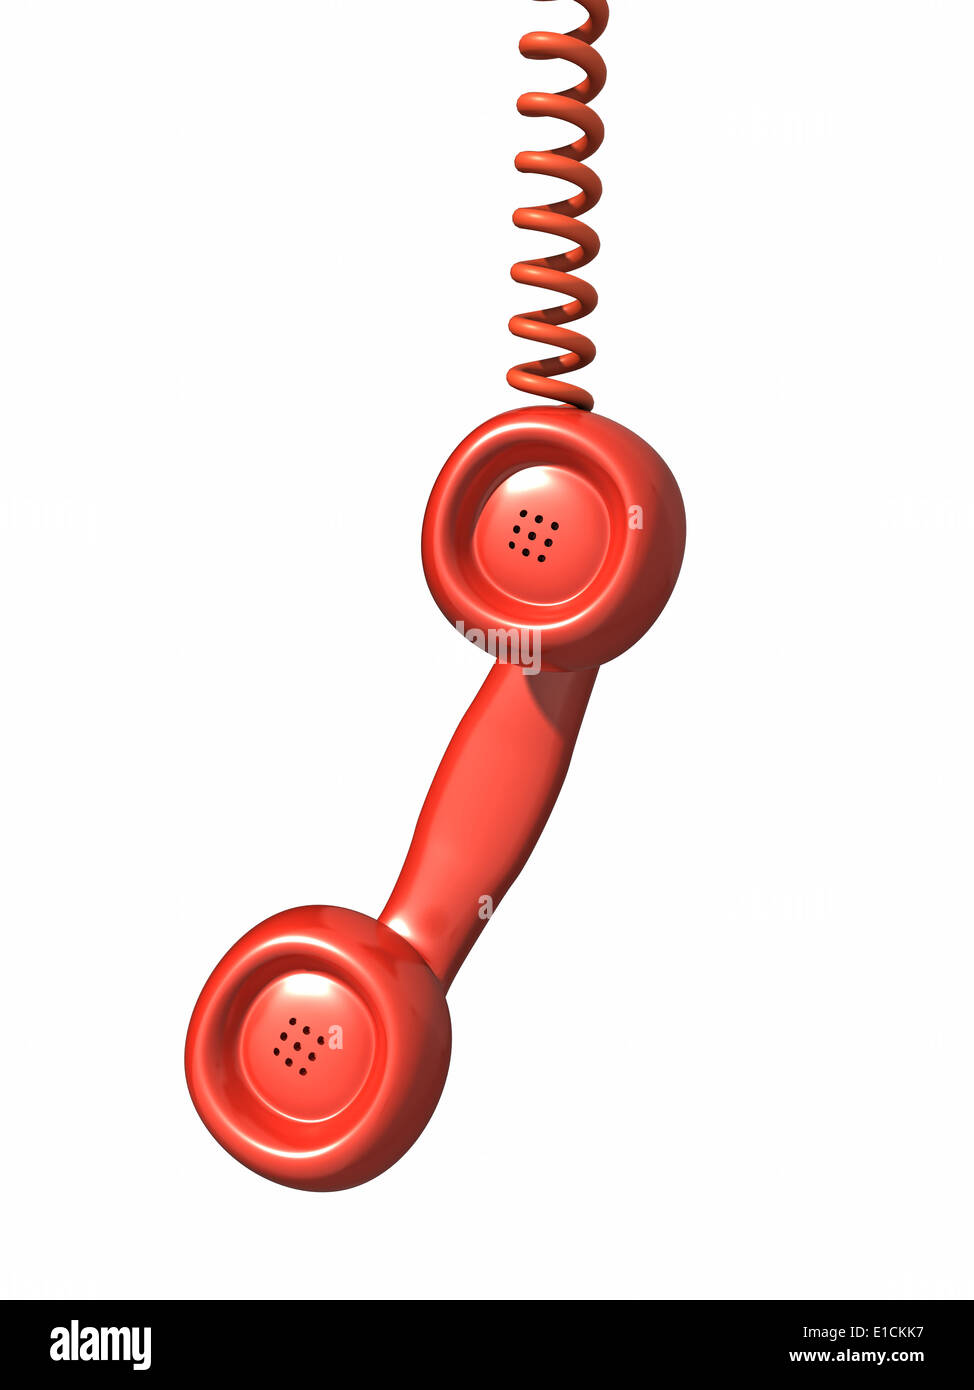 Amazing 3D Red Telephone Handset Hangs By A Wire Stock Photo 69734987 Alamy Wiring 101 Nizathateforg